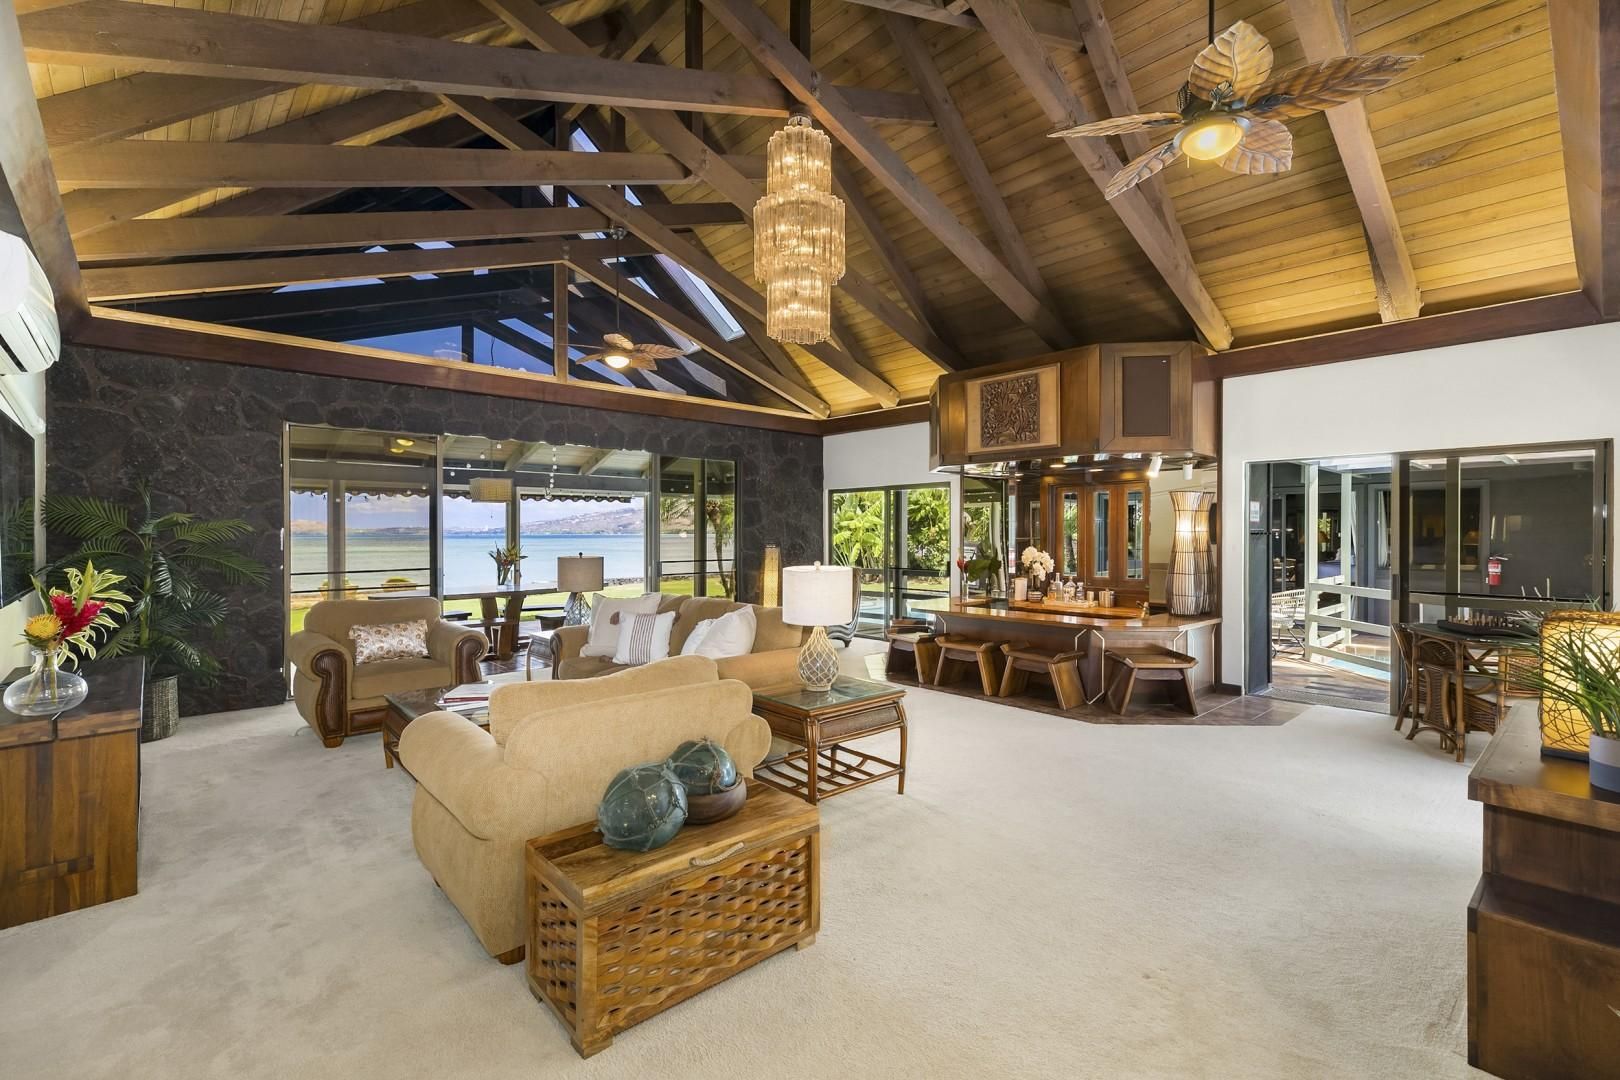 Large living room with ocean views that opens up to pool and oceanfront yard.